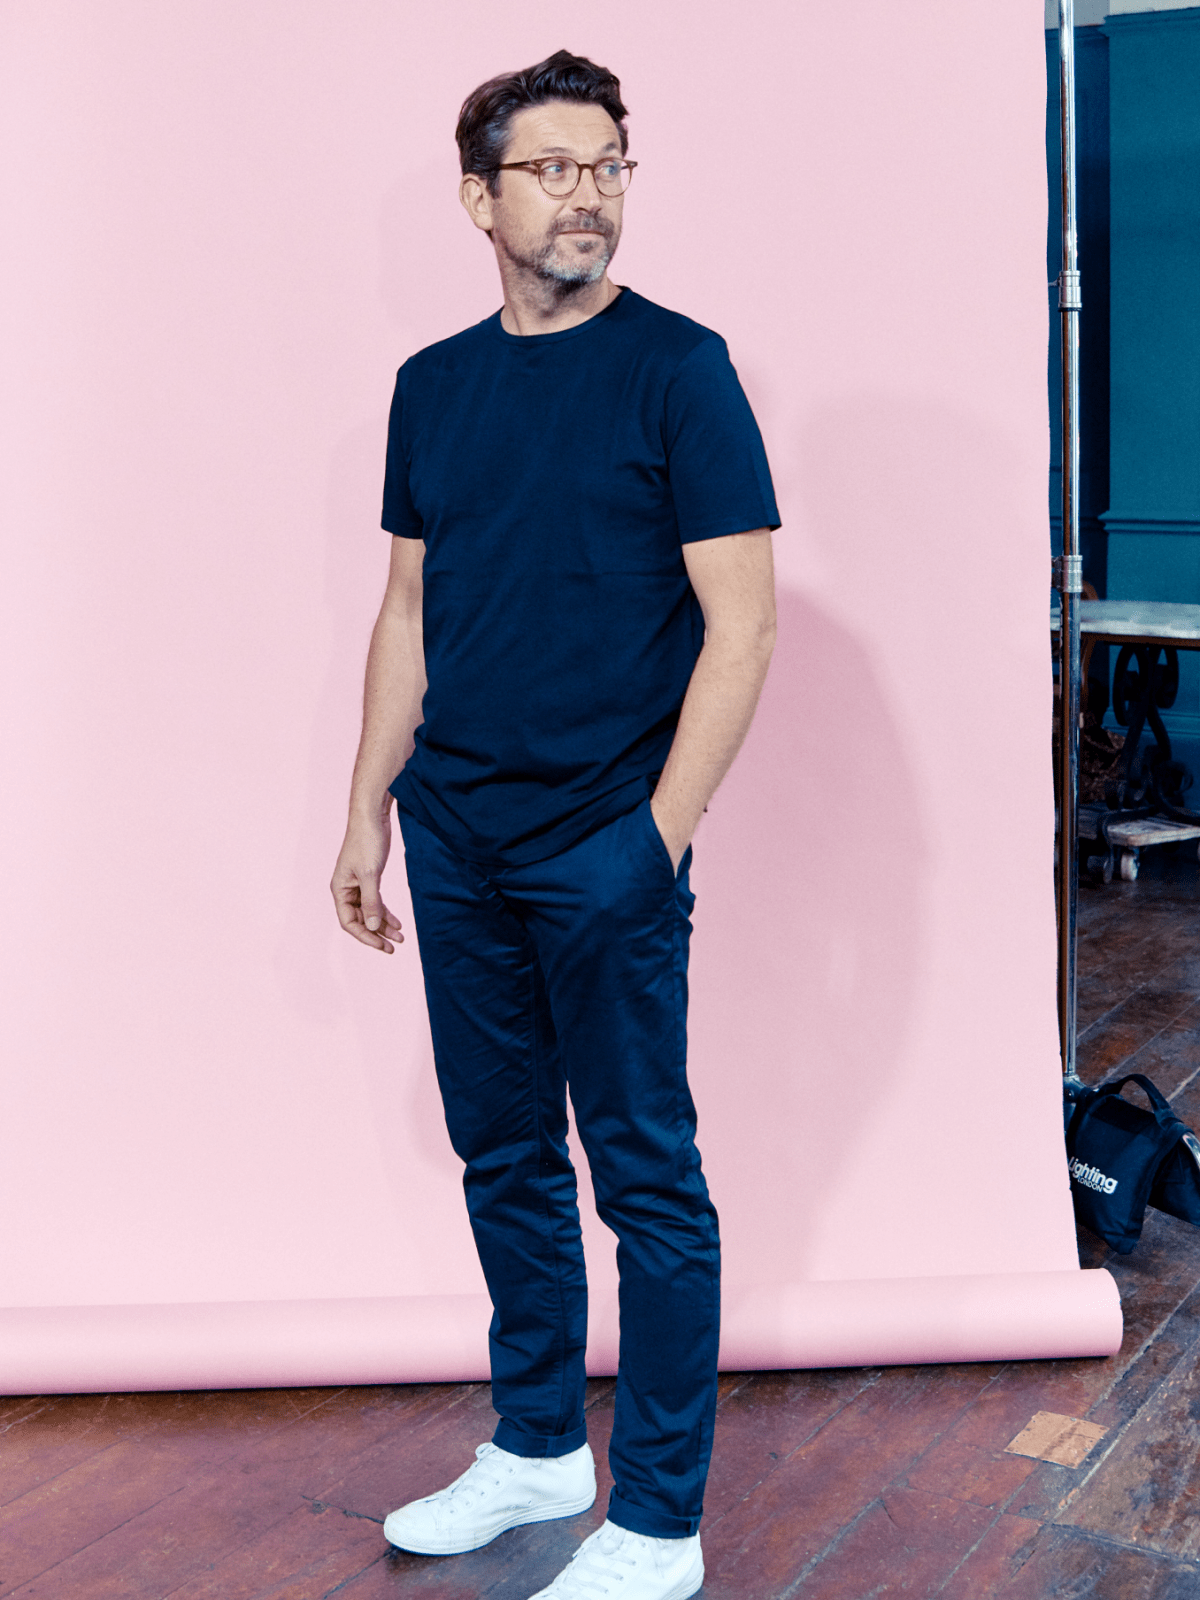 Man in blue t-shirt and trousers and sneakers standing relaxed